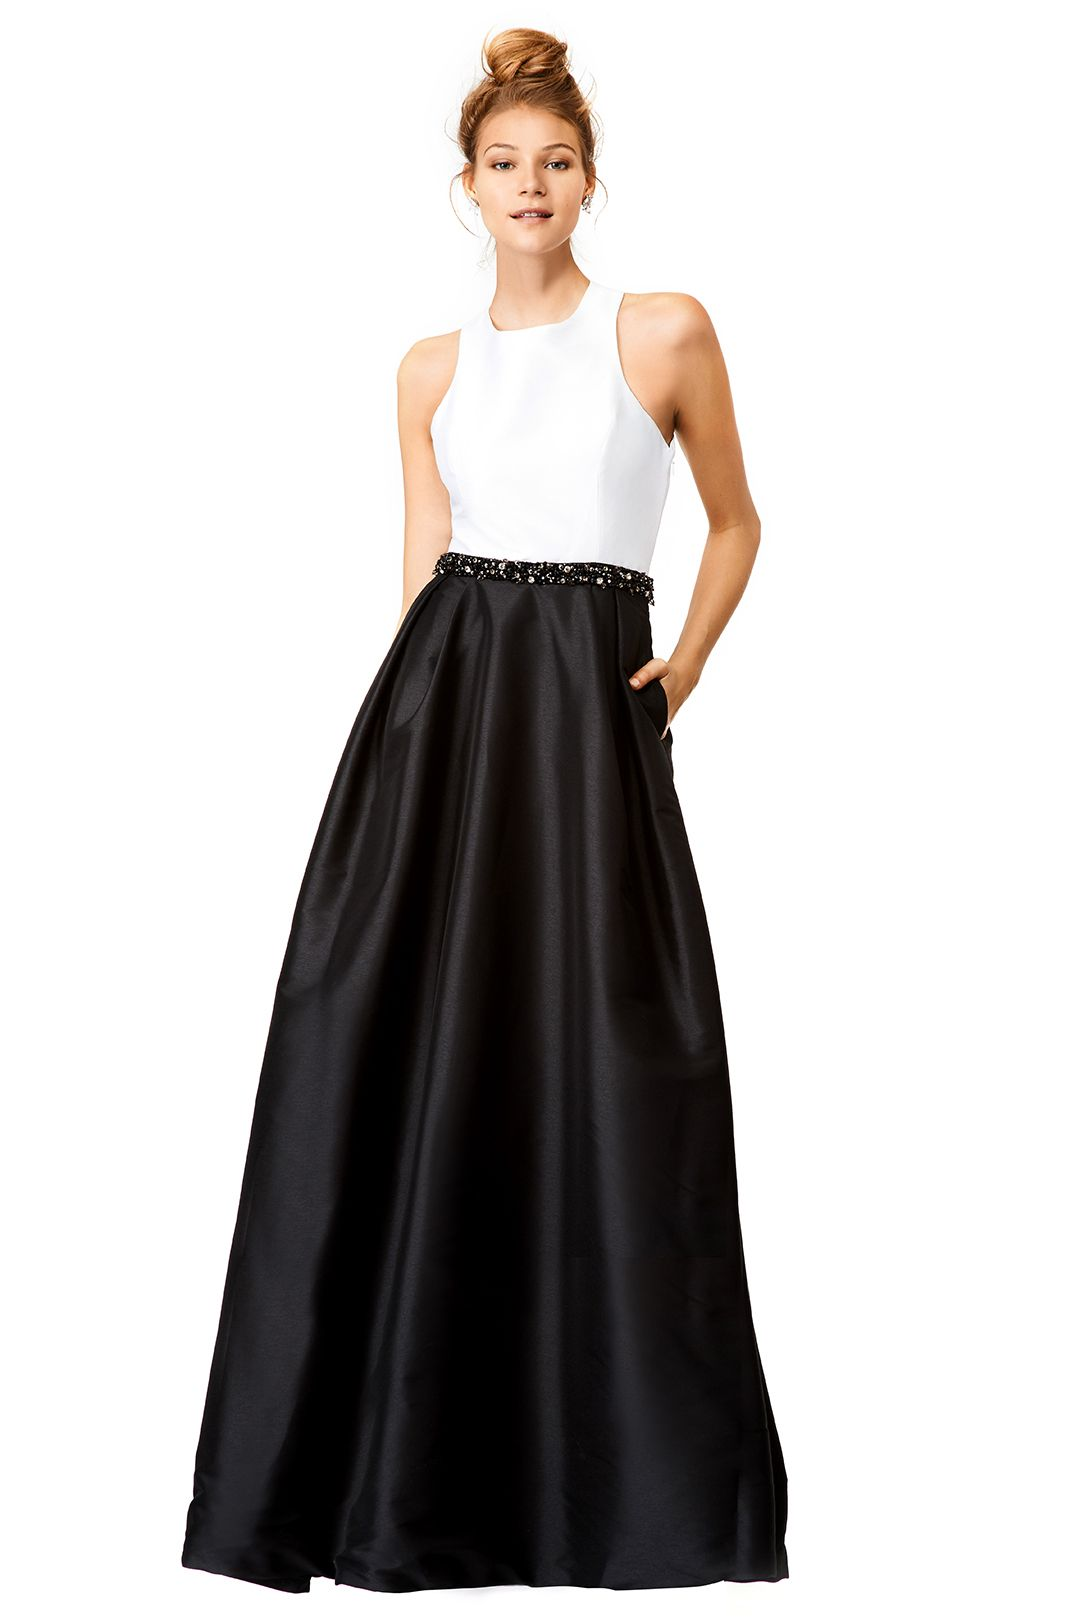 Jadore Contrast Gown | Monique lhuillier, Gowns and Black tie gown